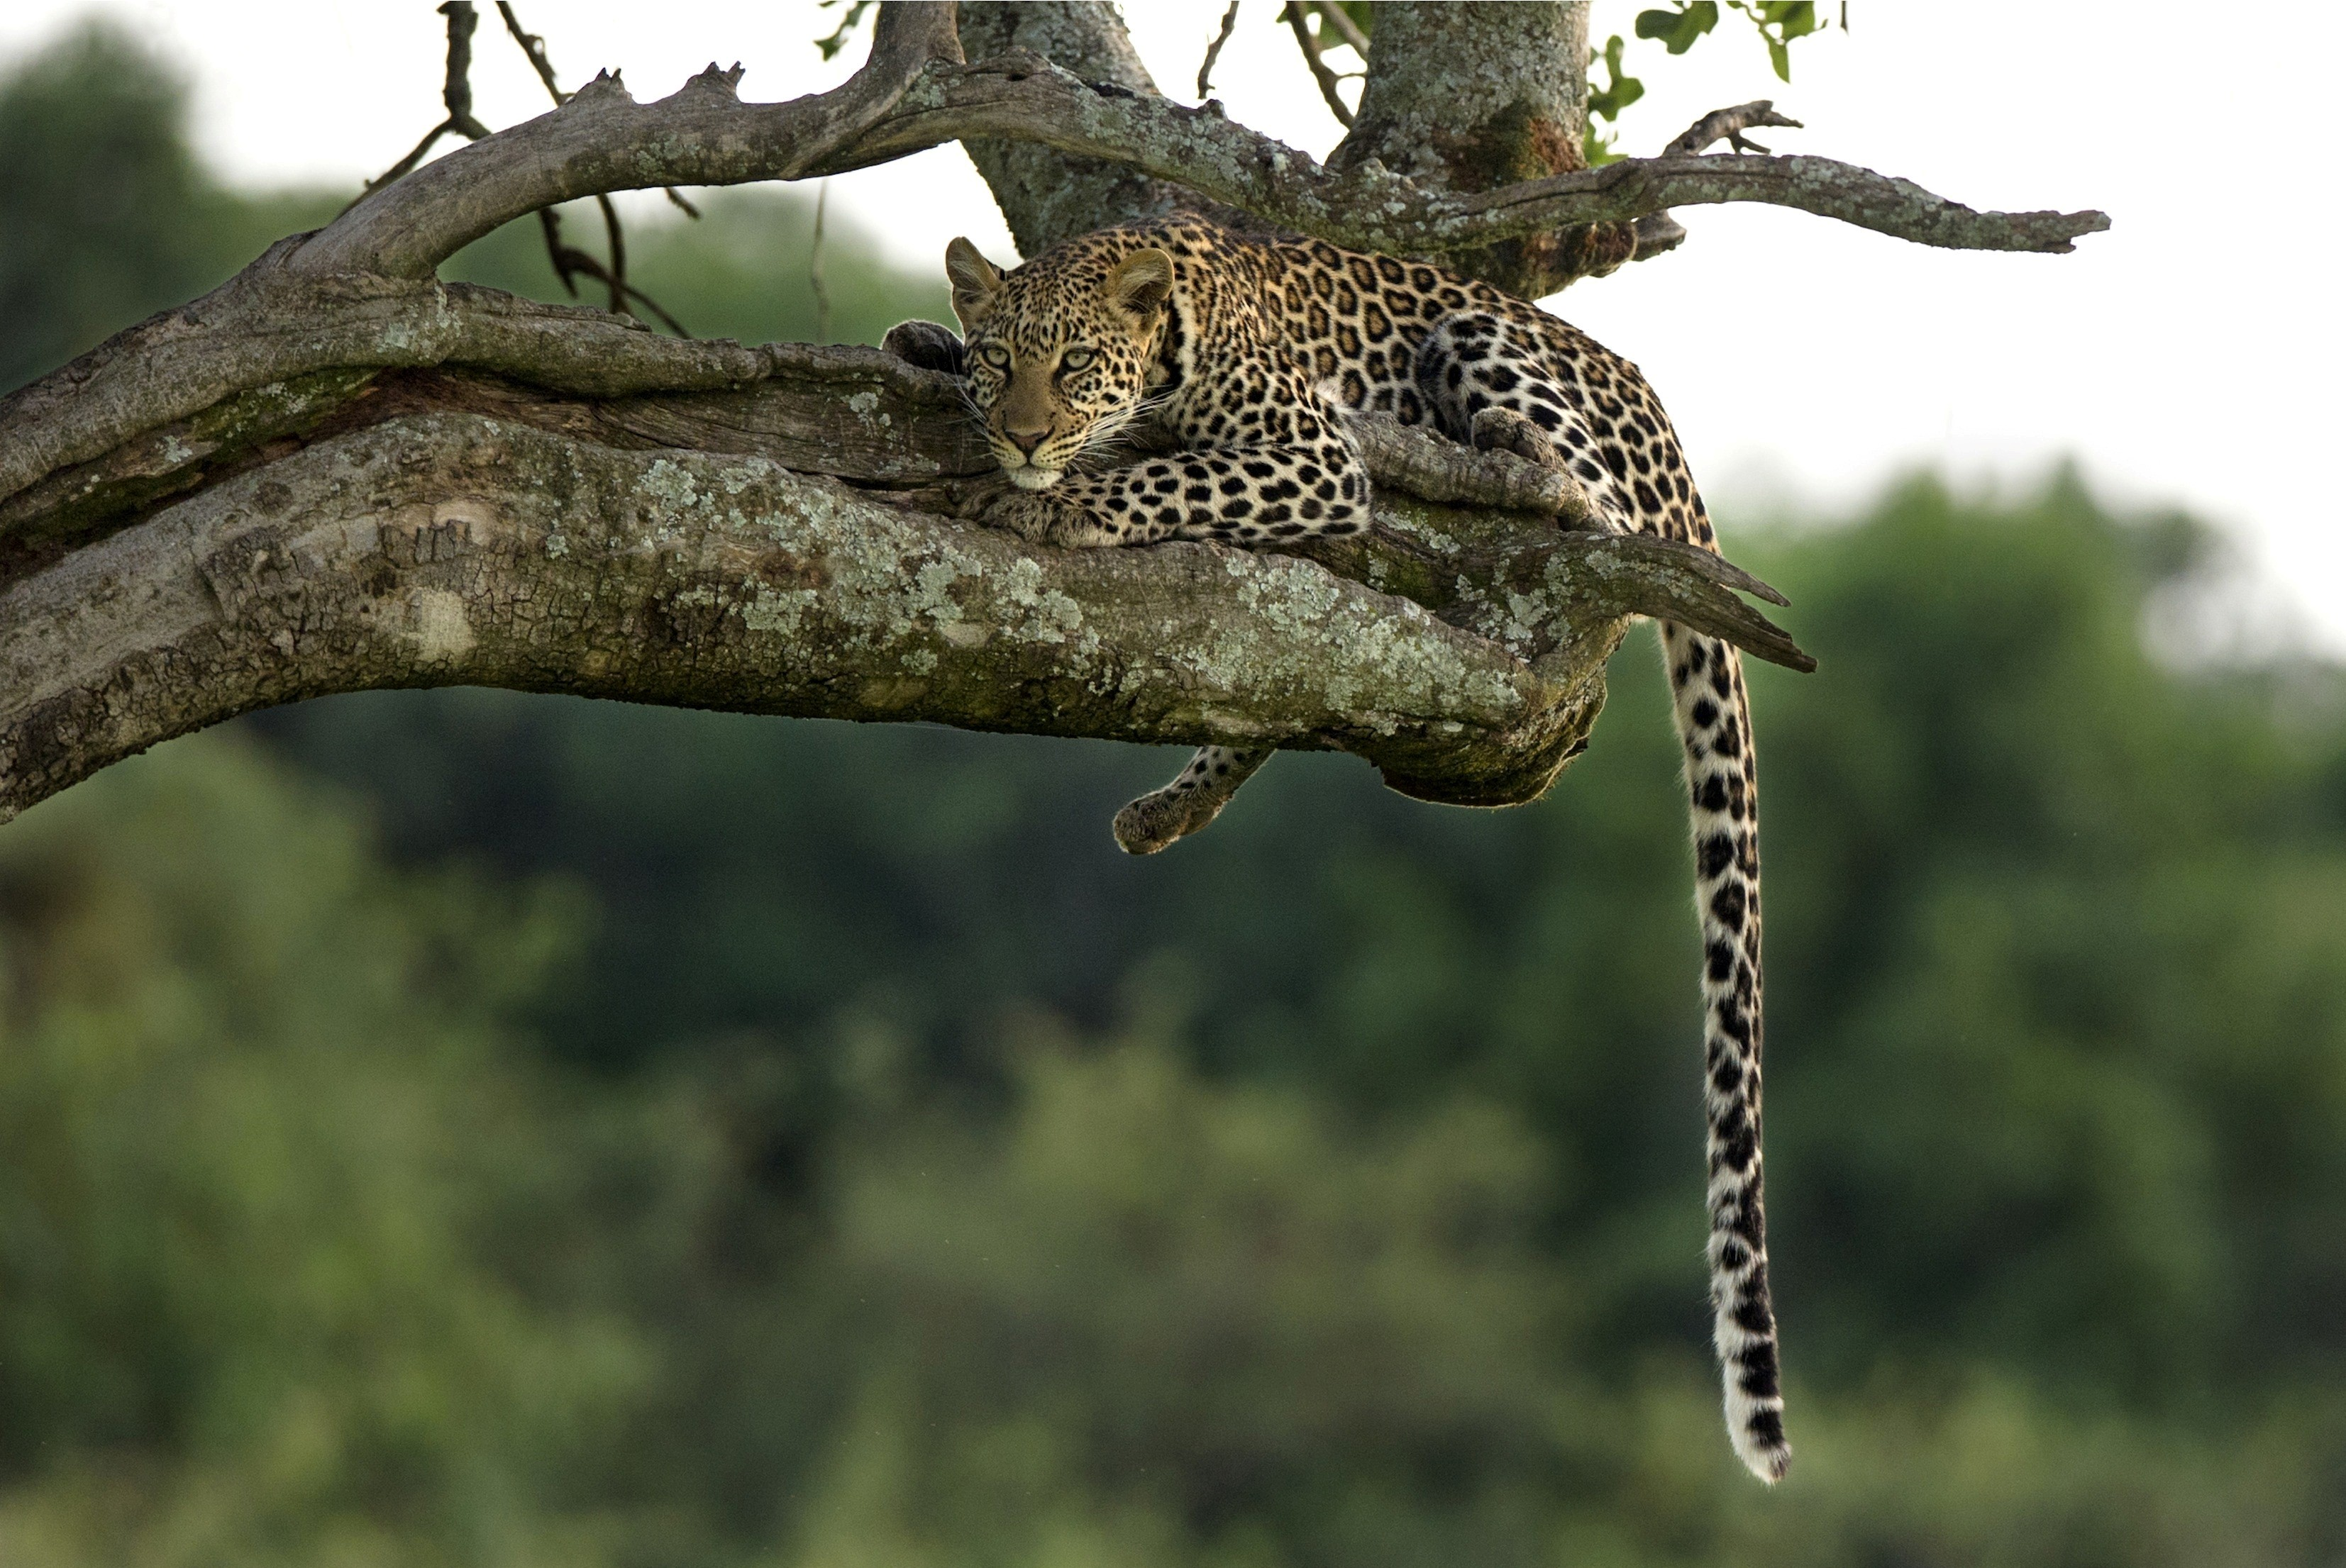 Leopard on the Tree | HD Wallpapers